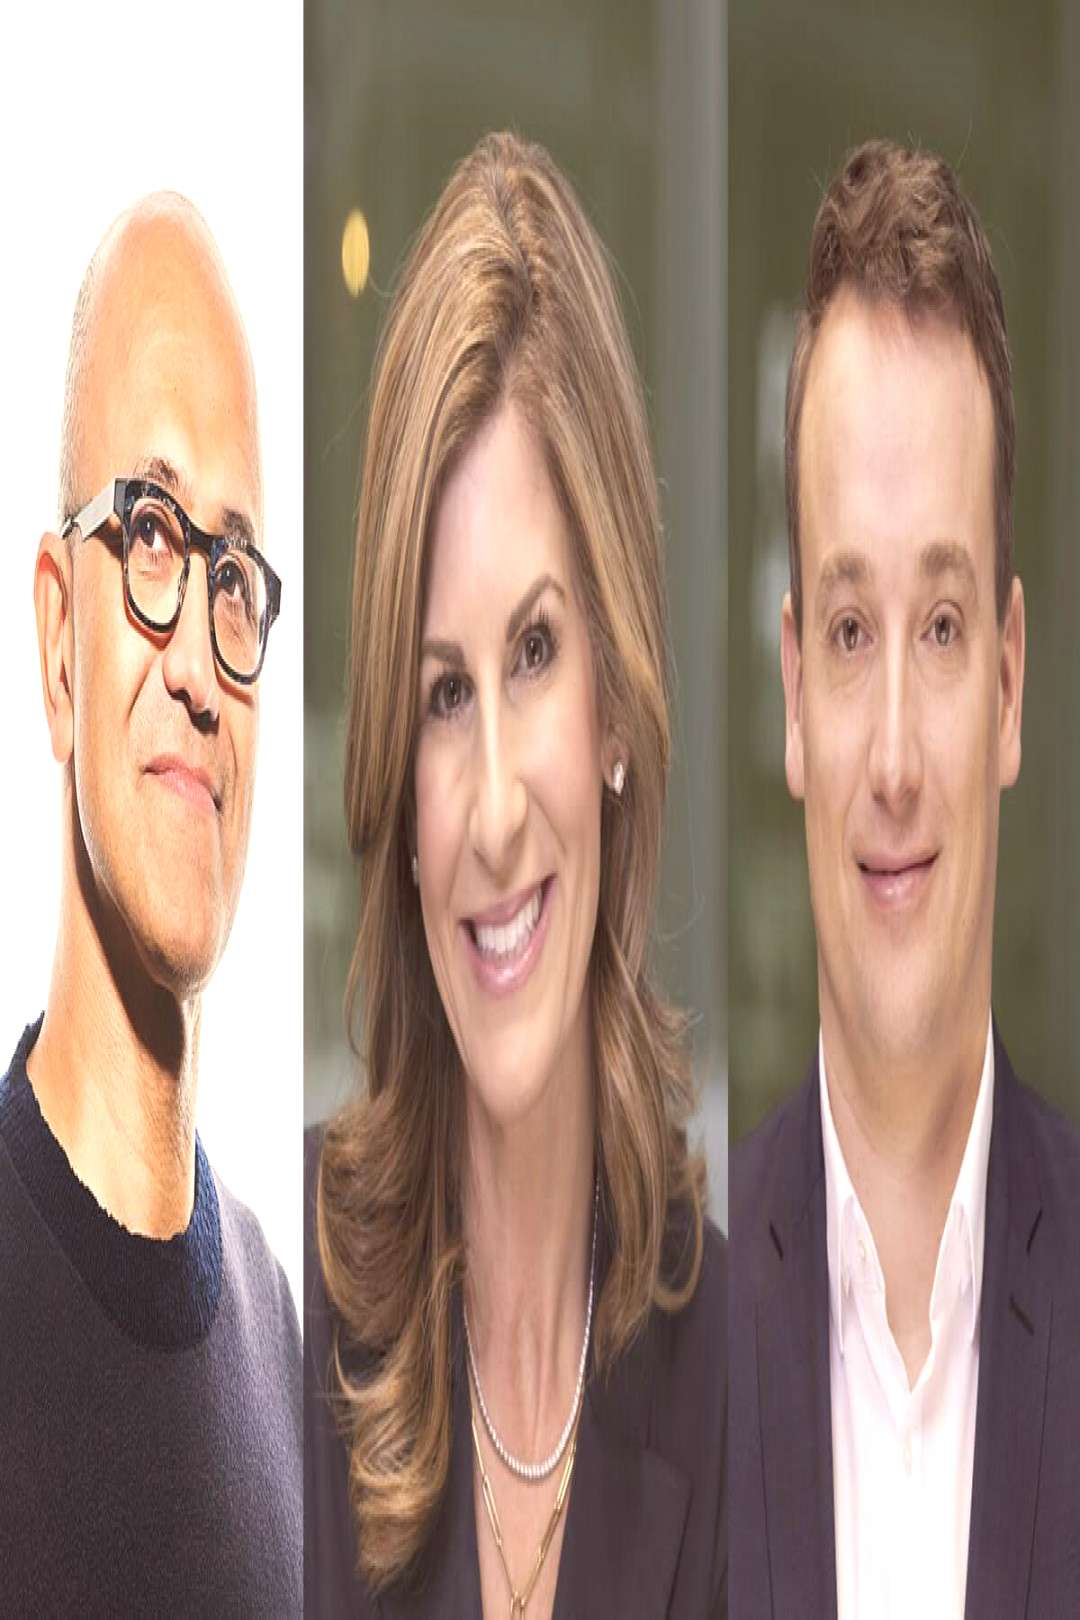 CloudWars  As COVID-19 Rages, Microsoft amp SAP CEOs Share Messages of Gratitude, Empathy, Hope